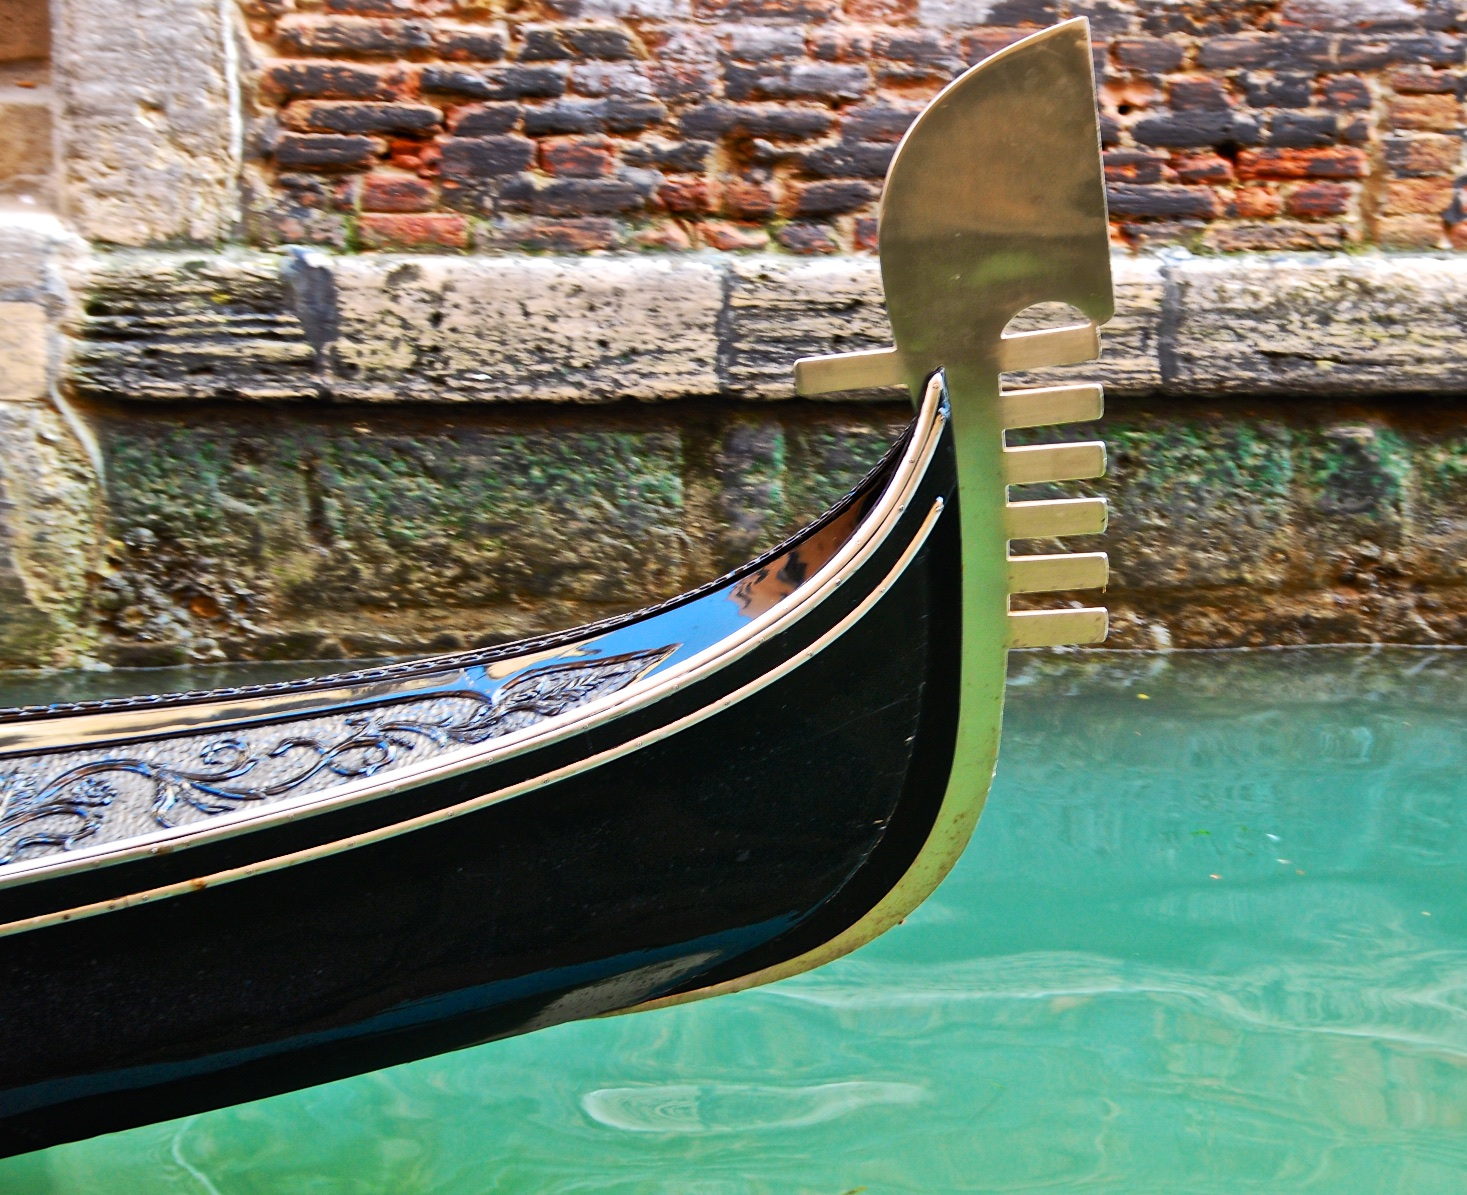 A gondola on a small channel in Venice